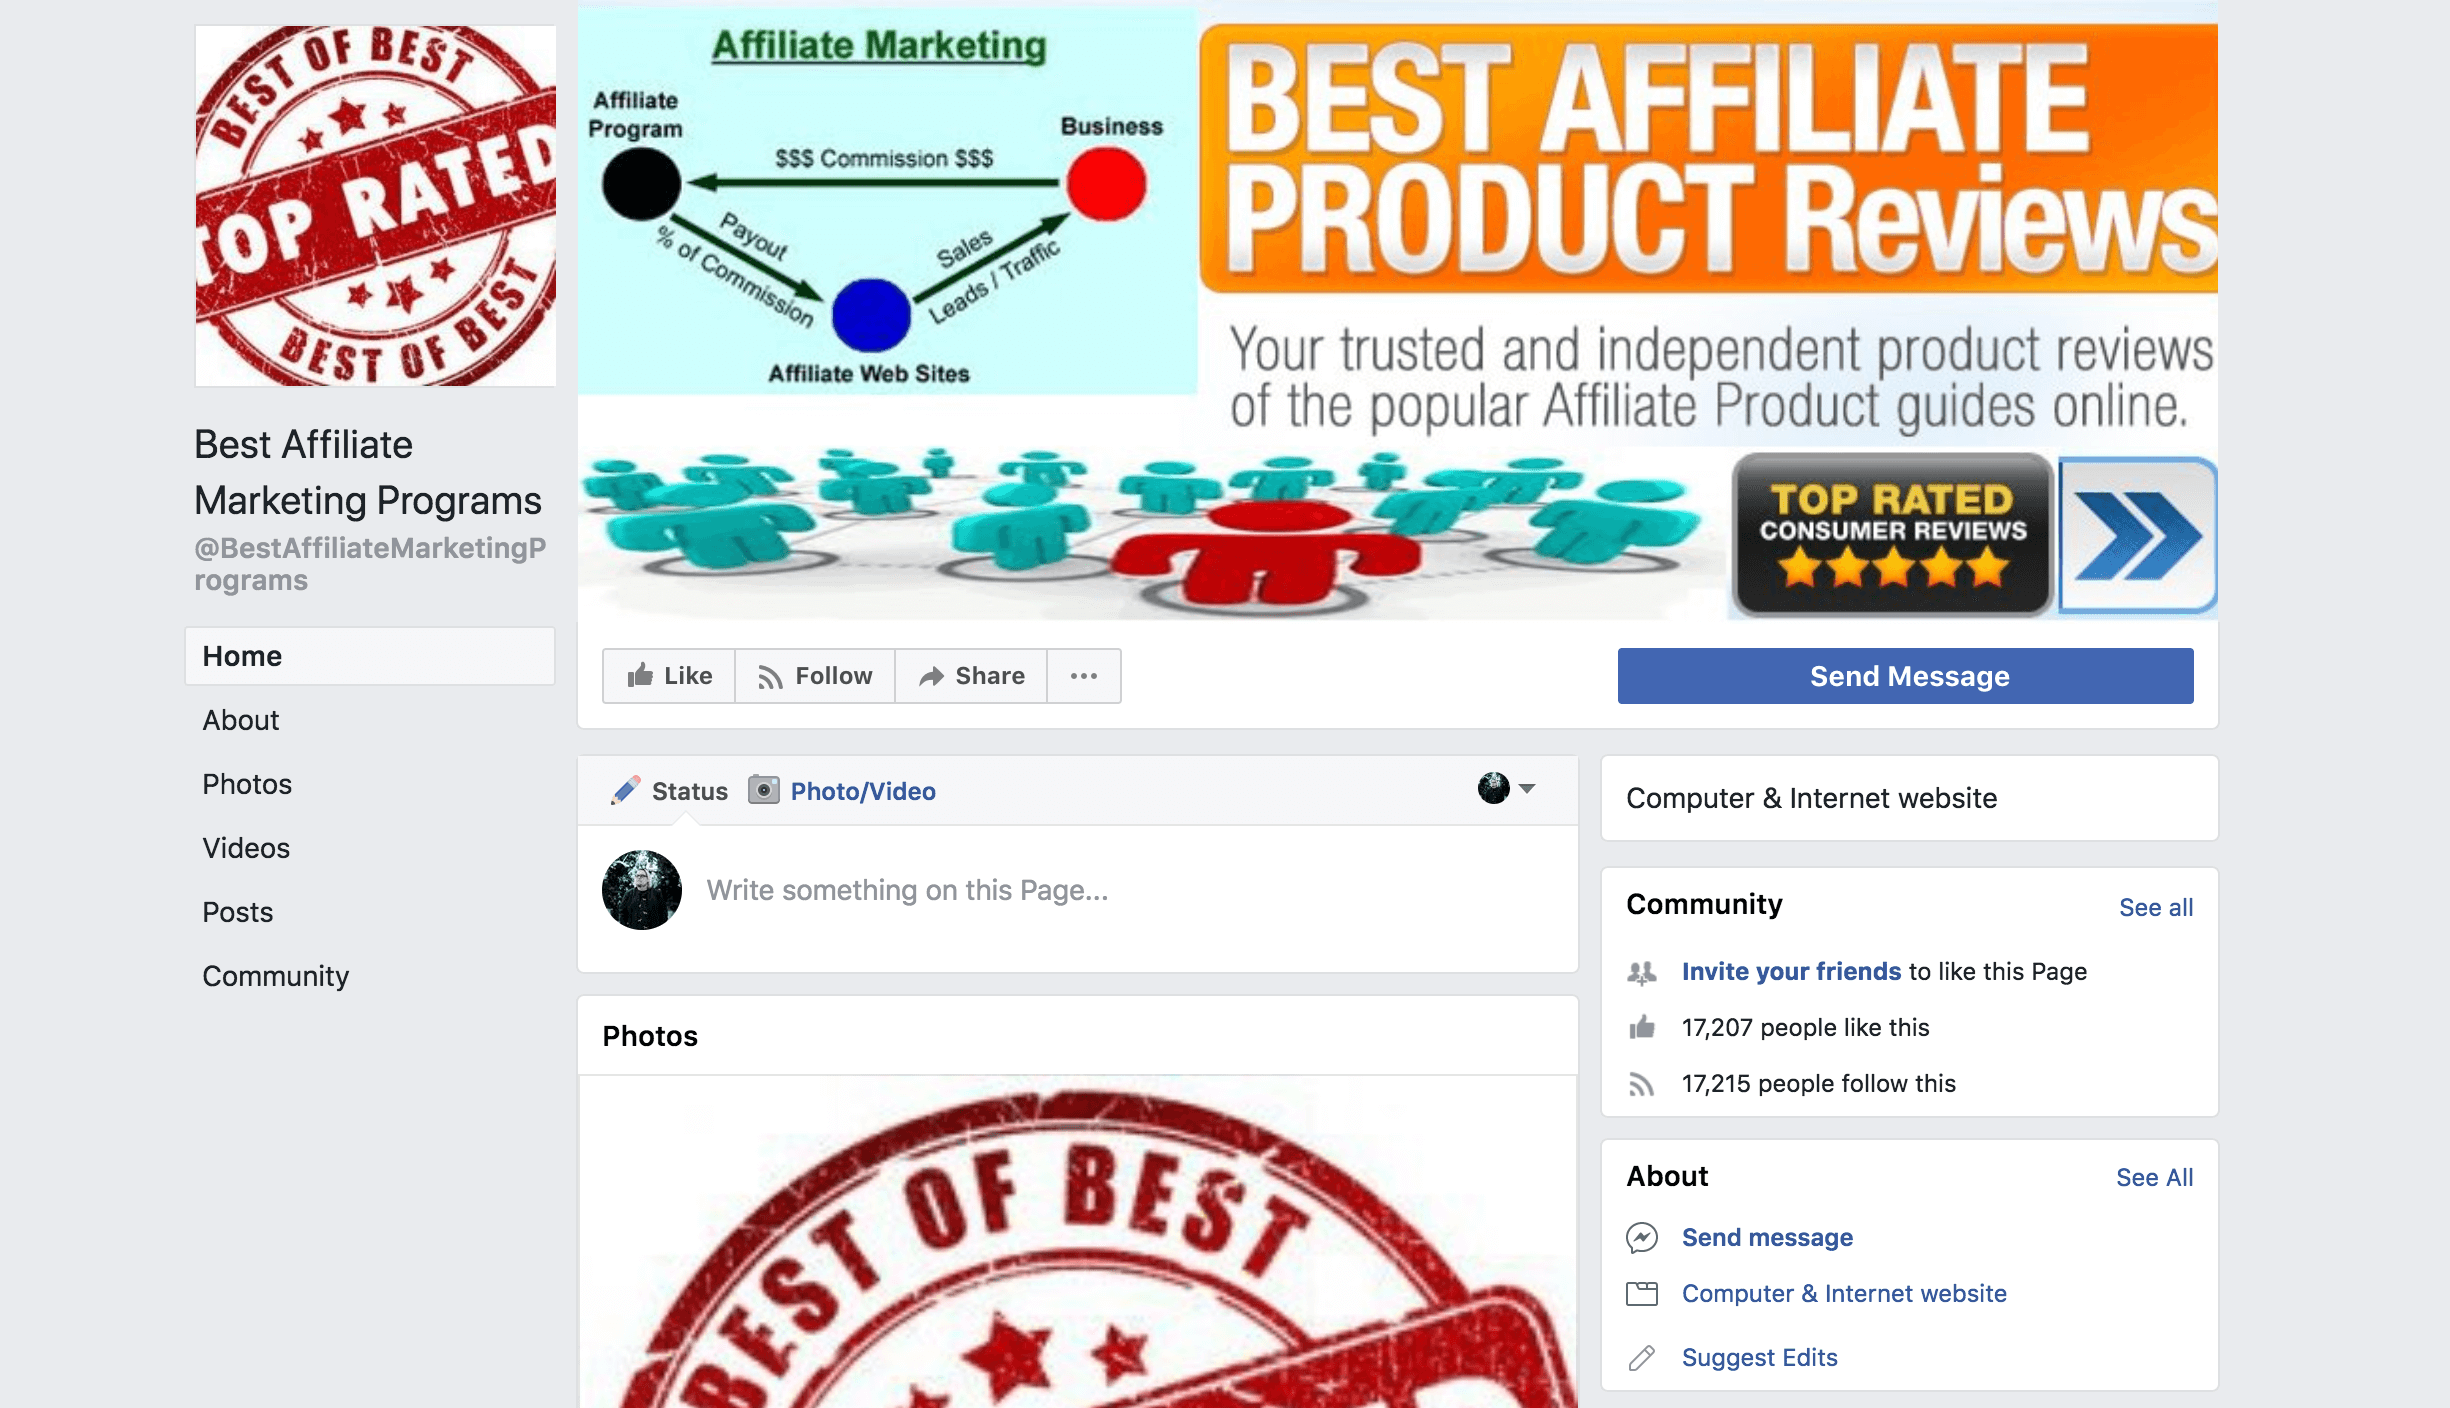 a Facebook group called Best Affiliate Marketing Programs.